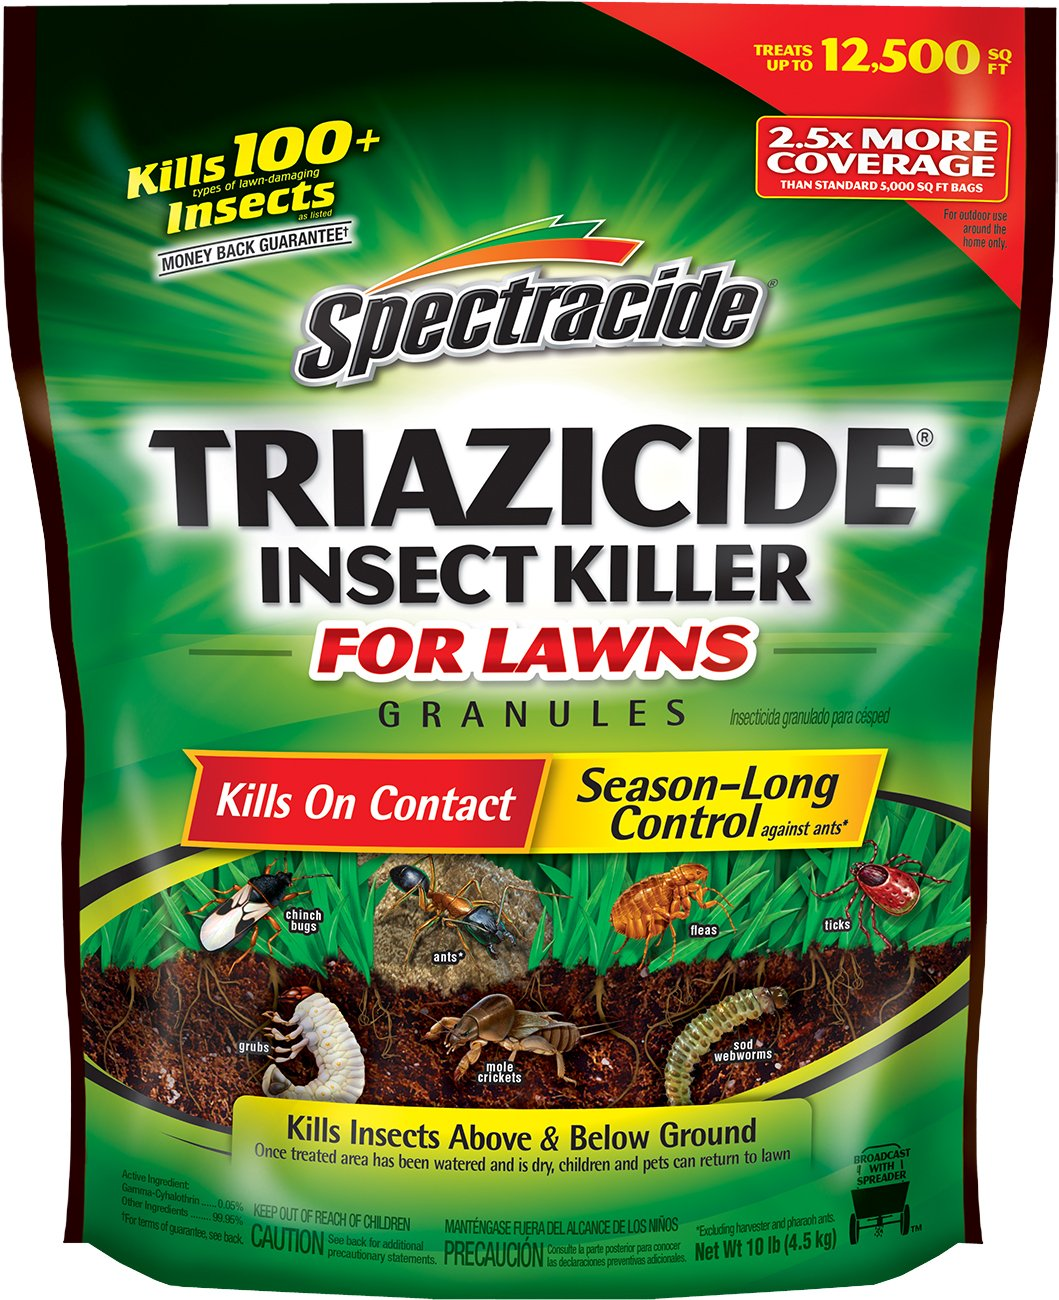 Spectracide Triazicide Insect Killer For Lawns Granules, 10-Pound, 4-Pack by Spectracide